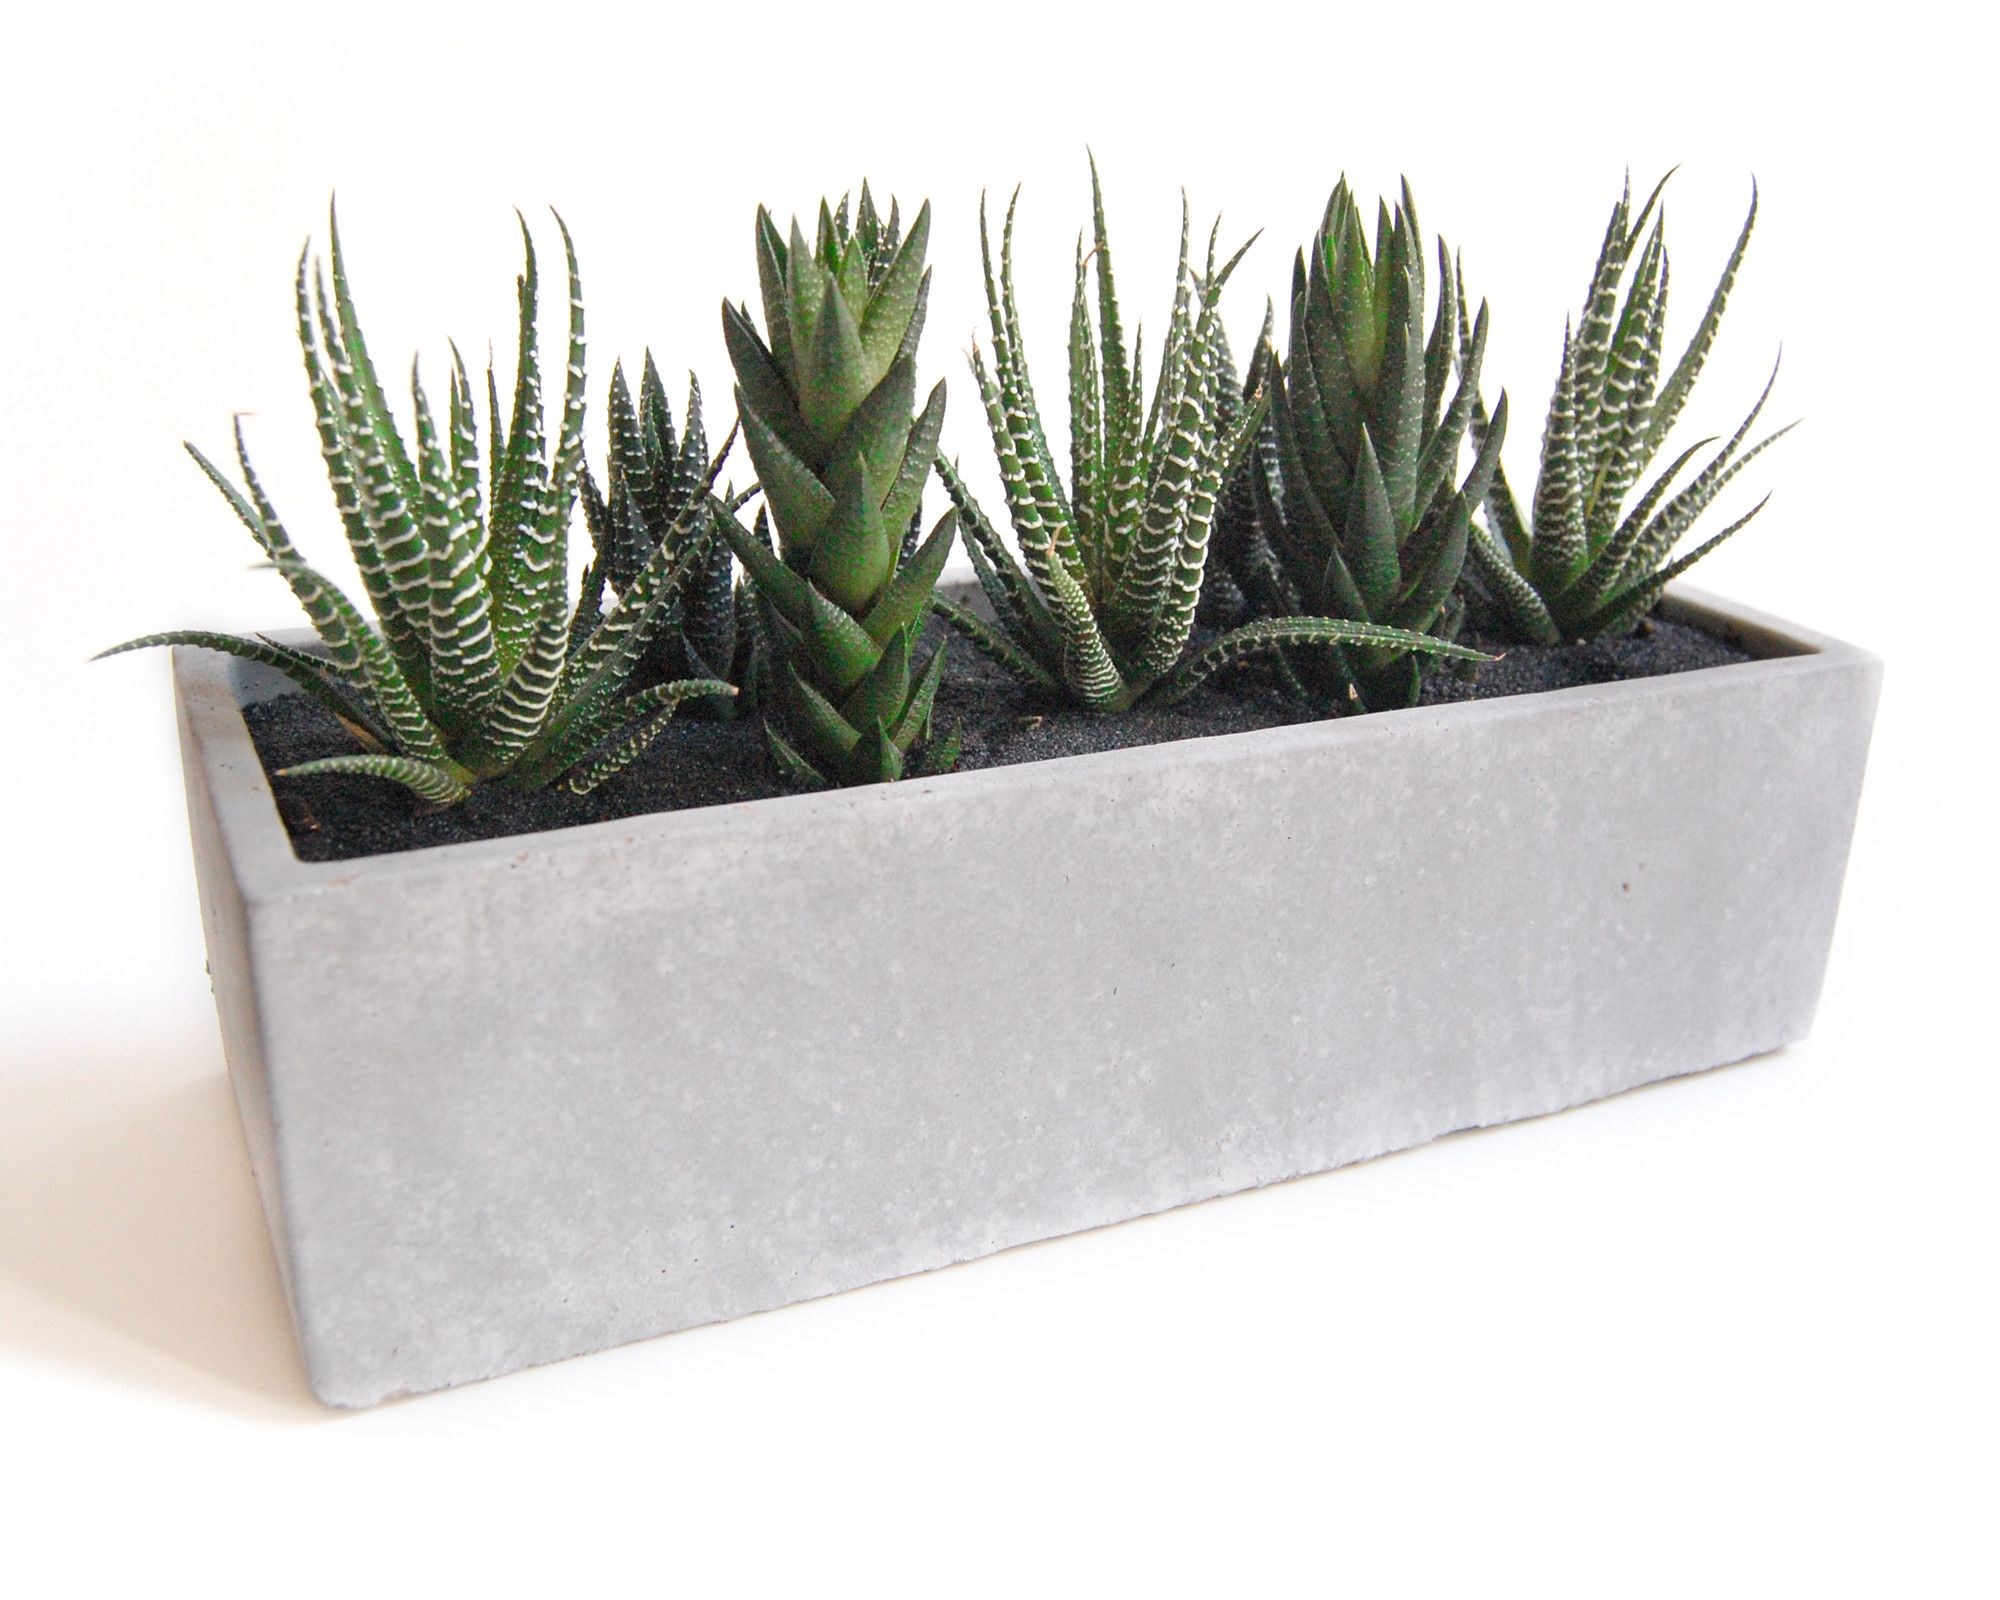 Collection of Cacti in a Modern Grey Planter